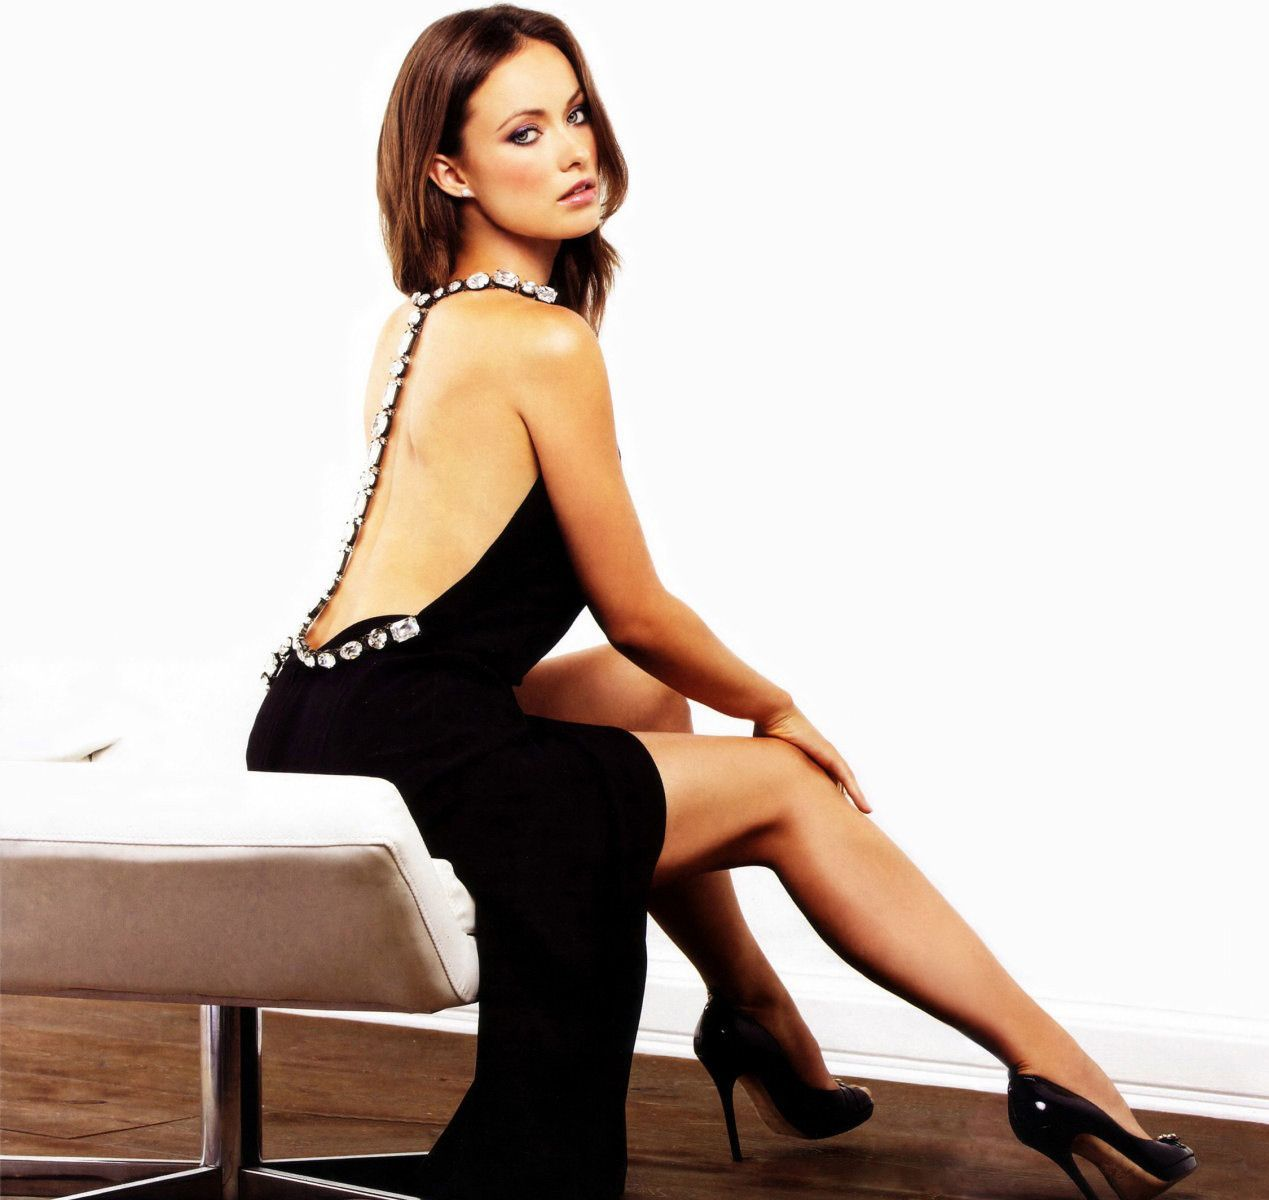 olivia wilde s wildly hot legs